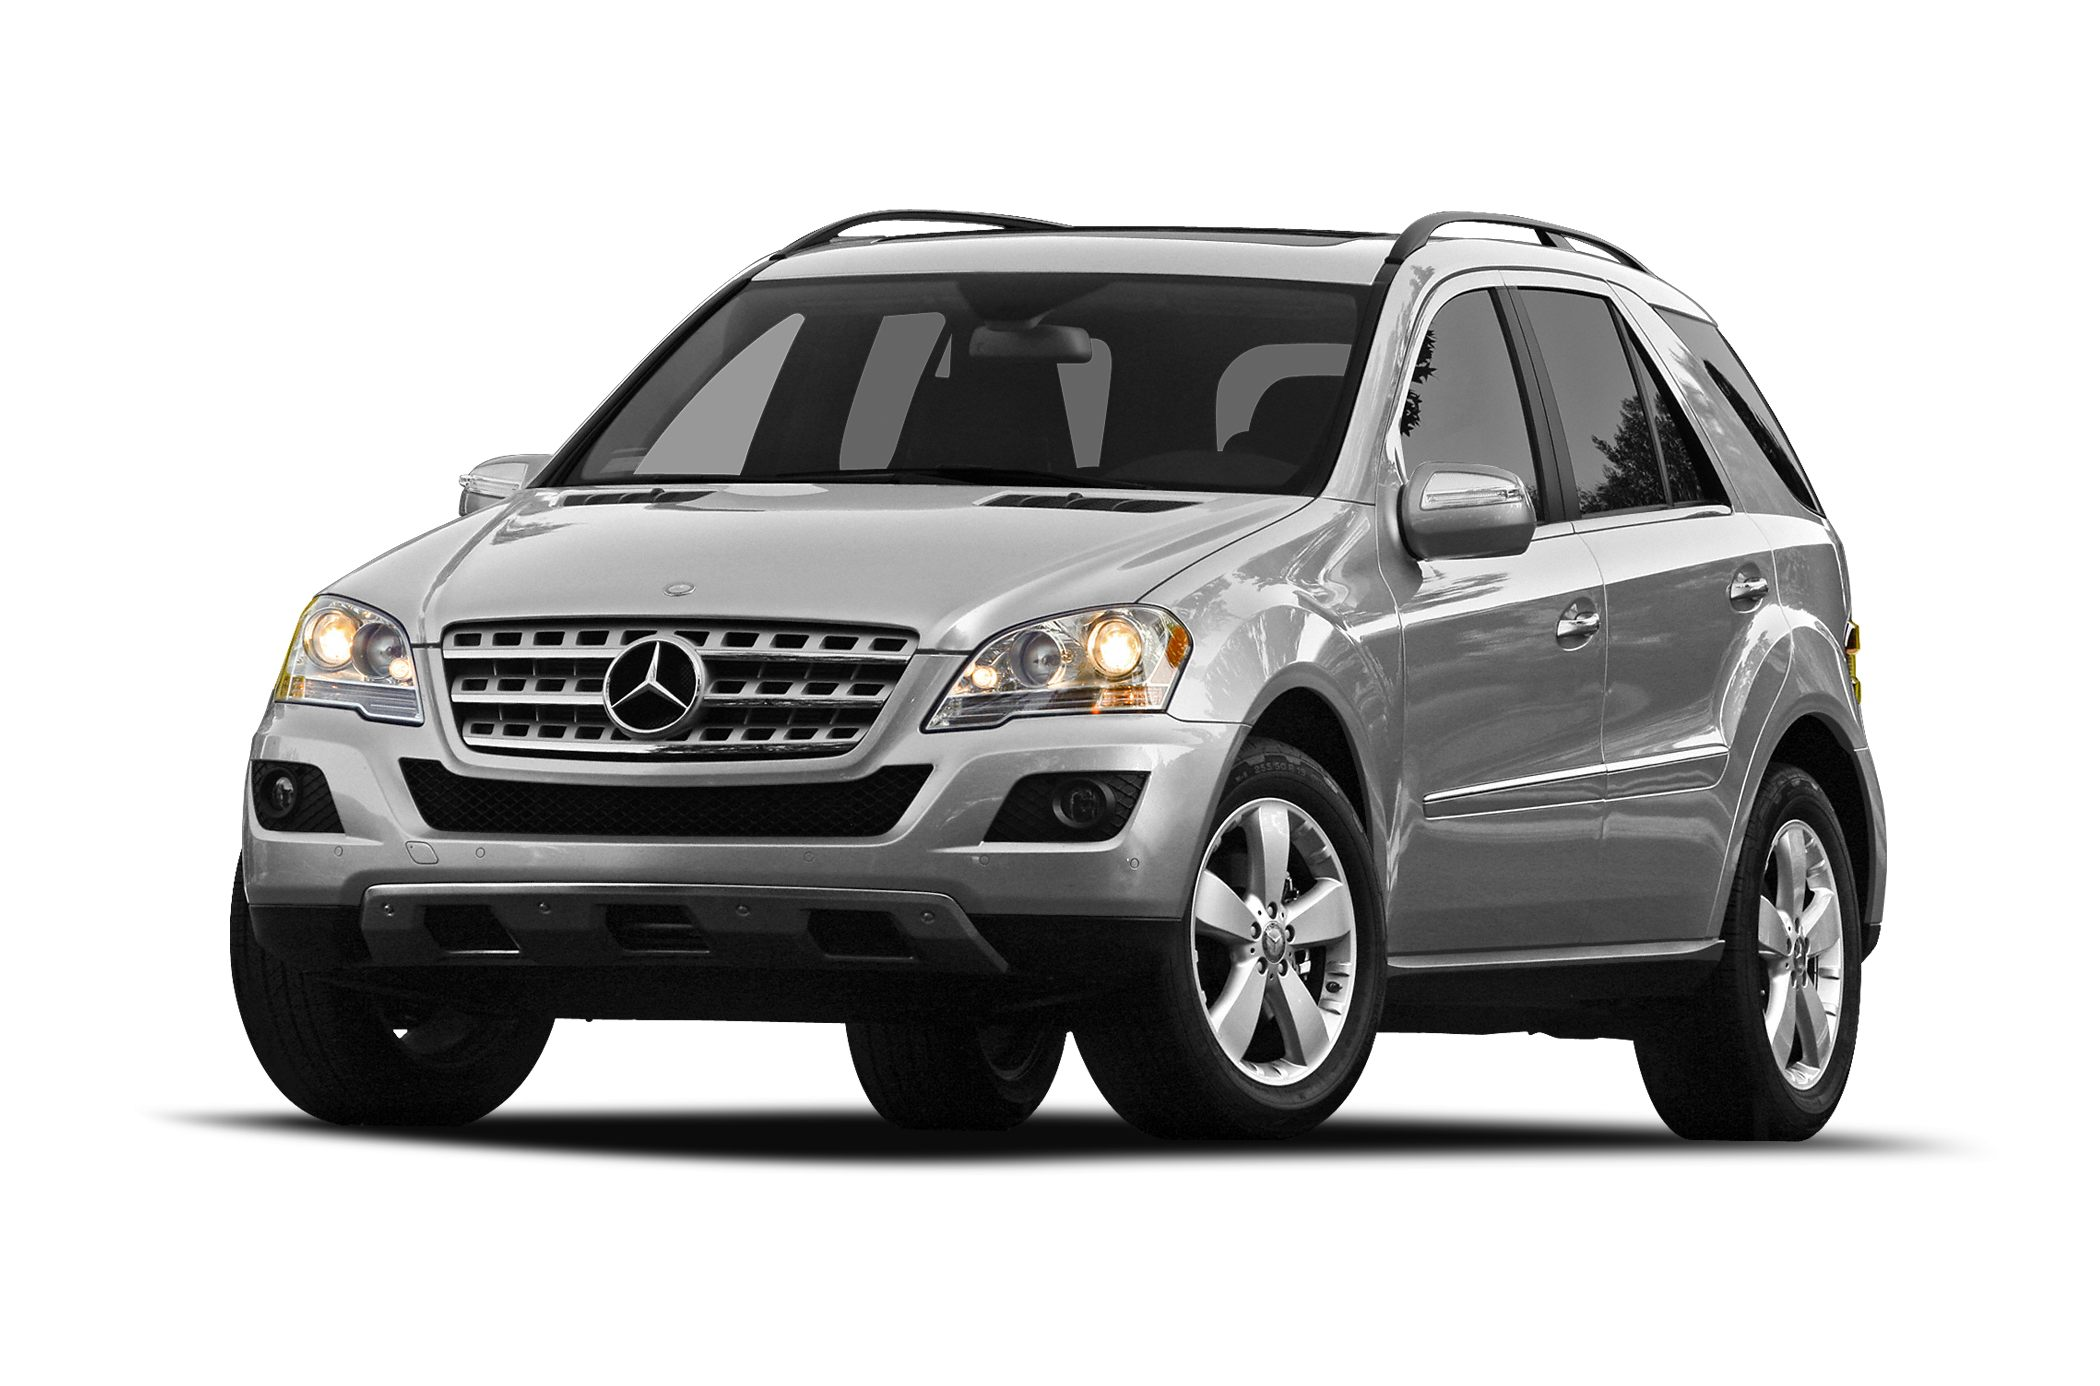 2009 Mercedes-Benz M-Class ML350 4MATIC SUV for sale in Tulsa for $21,000 with 93,818 miles